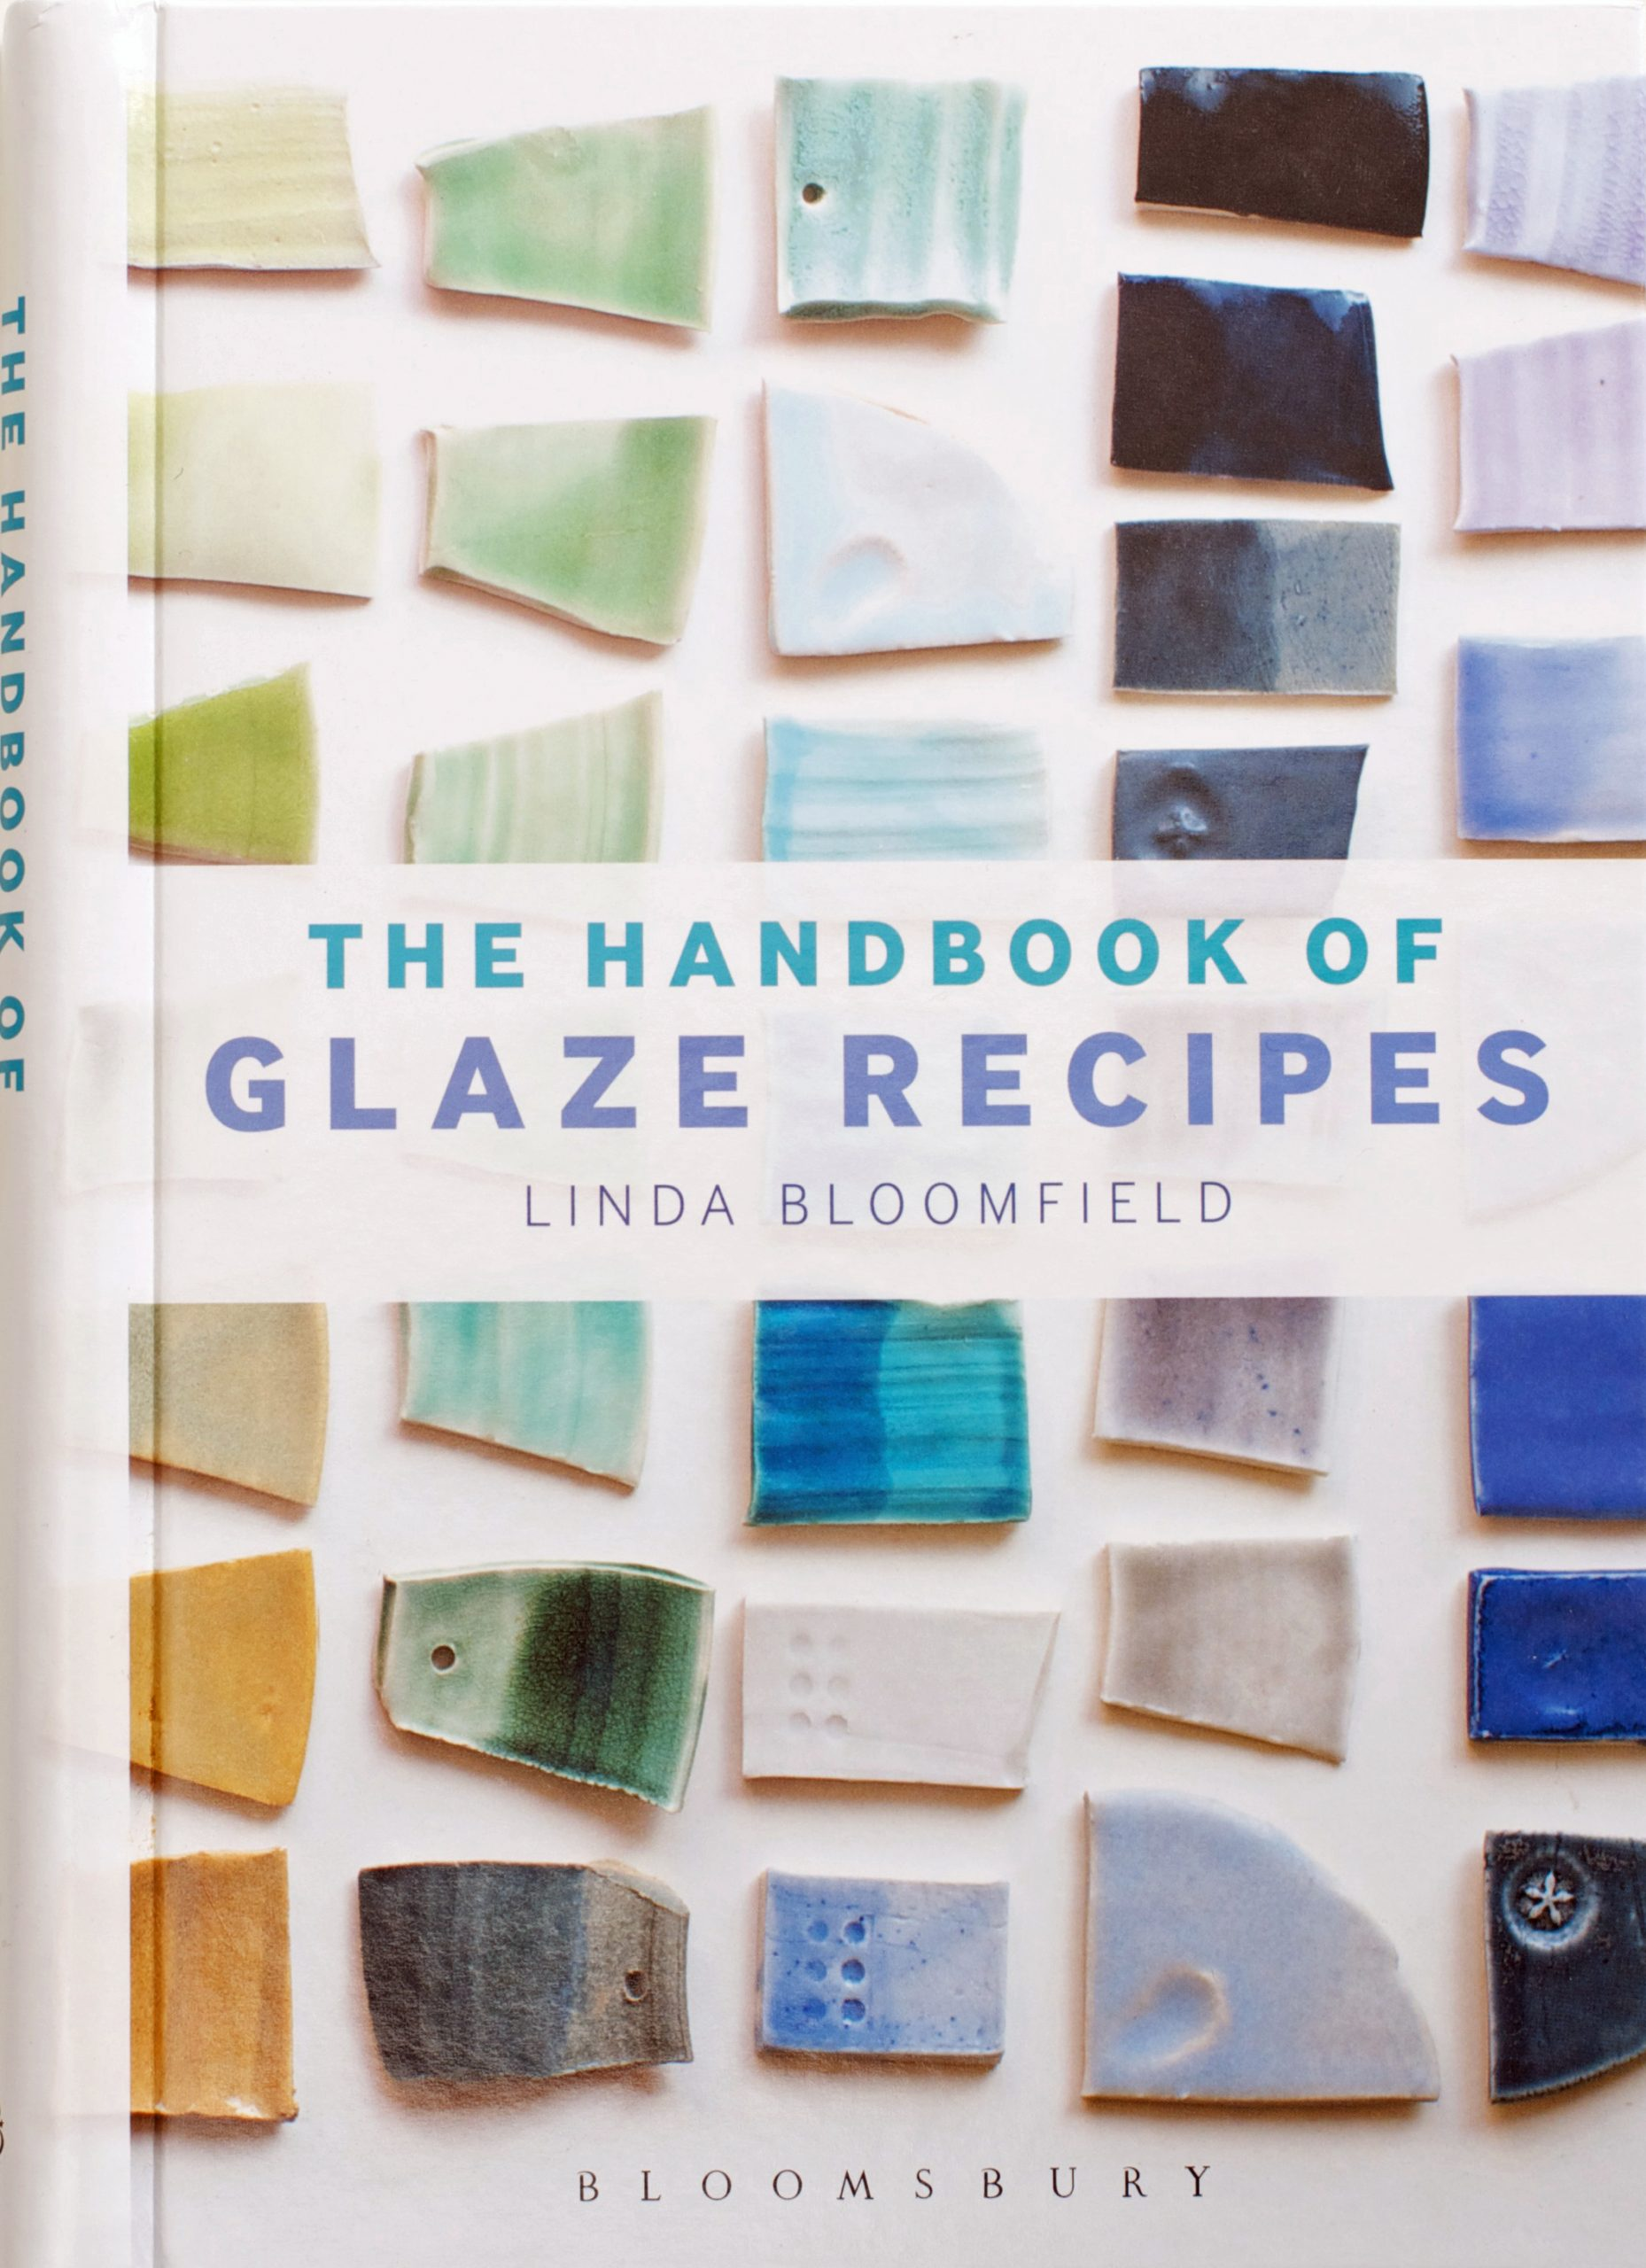 The Handbook of Glaze Recipes by Linda Bloomfield